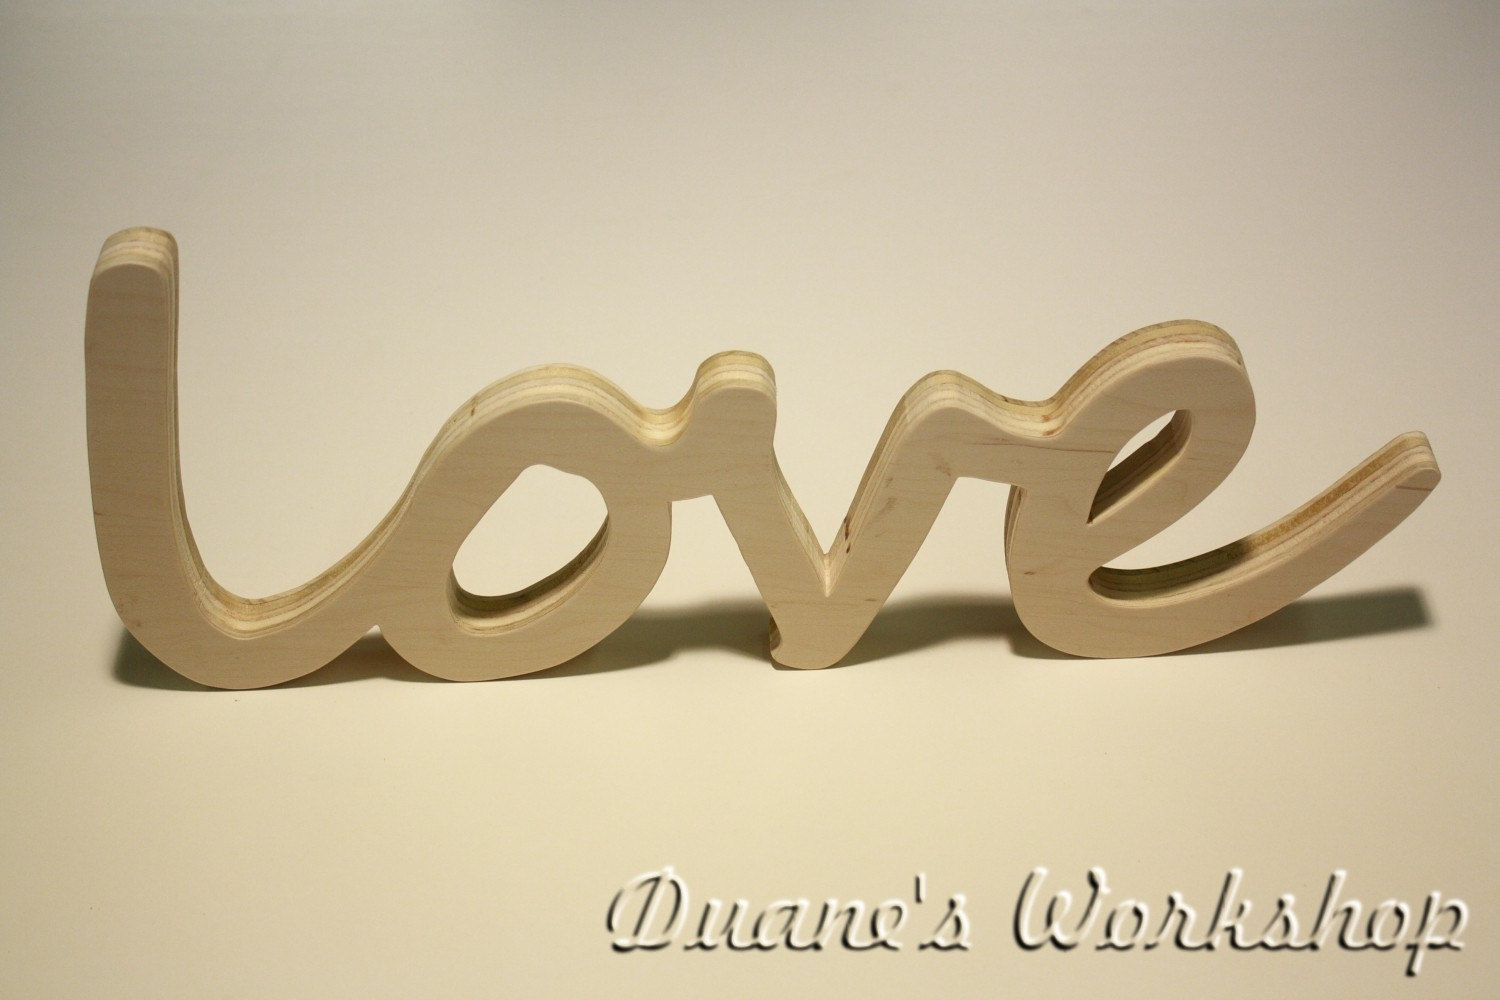 Buy Letters For Wall Love Sign Diy Wall Hanging Wooden Believe Sign Wooden Letters